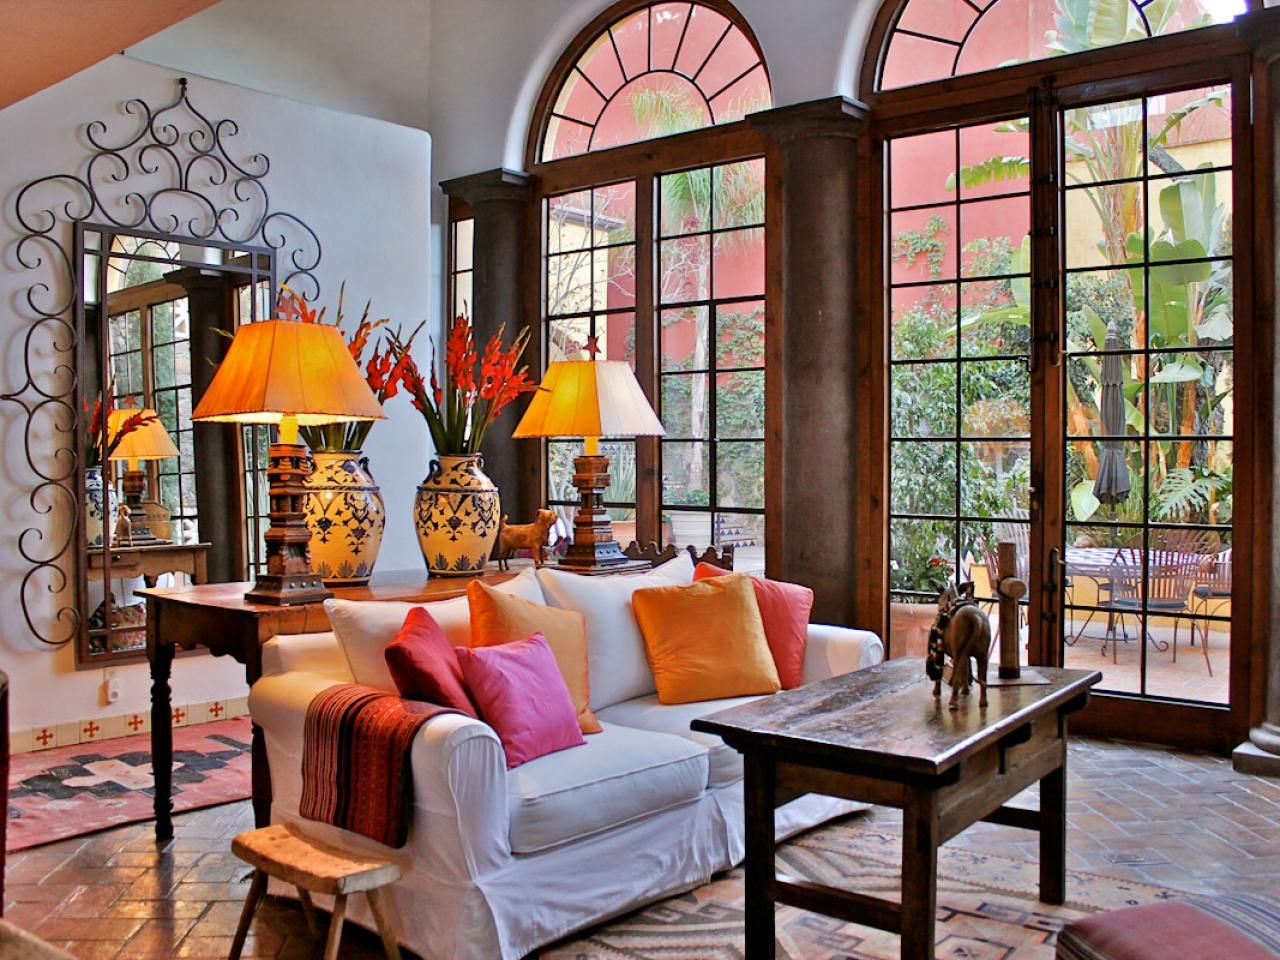 10 Spanish Inspired Rooms Interior Design Styles And Color Schemes For Home Decorating Hgtv